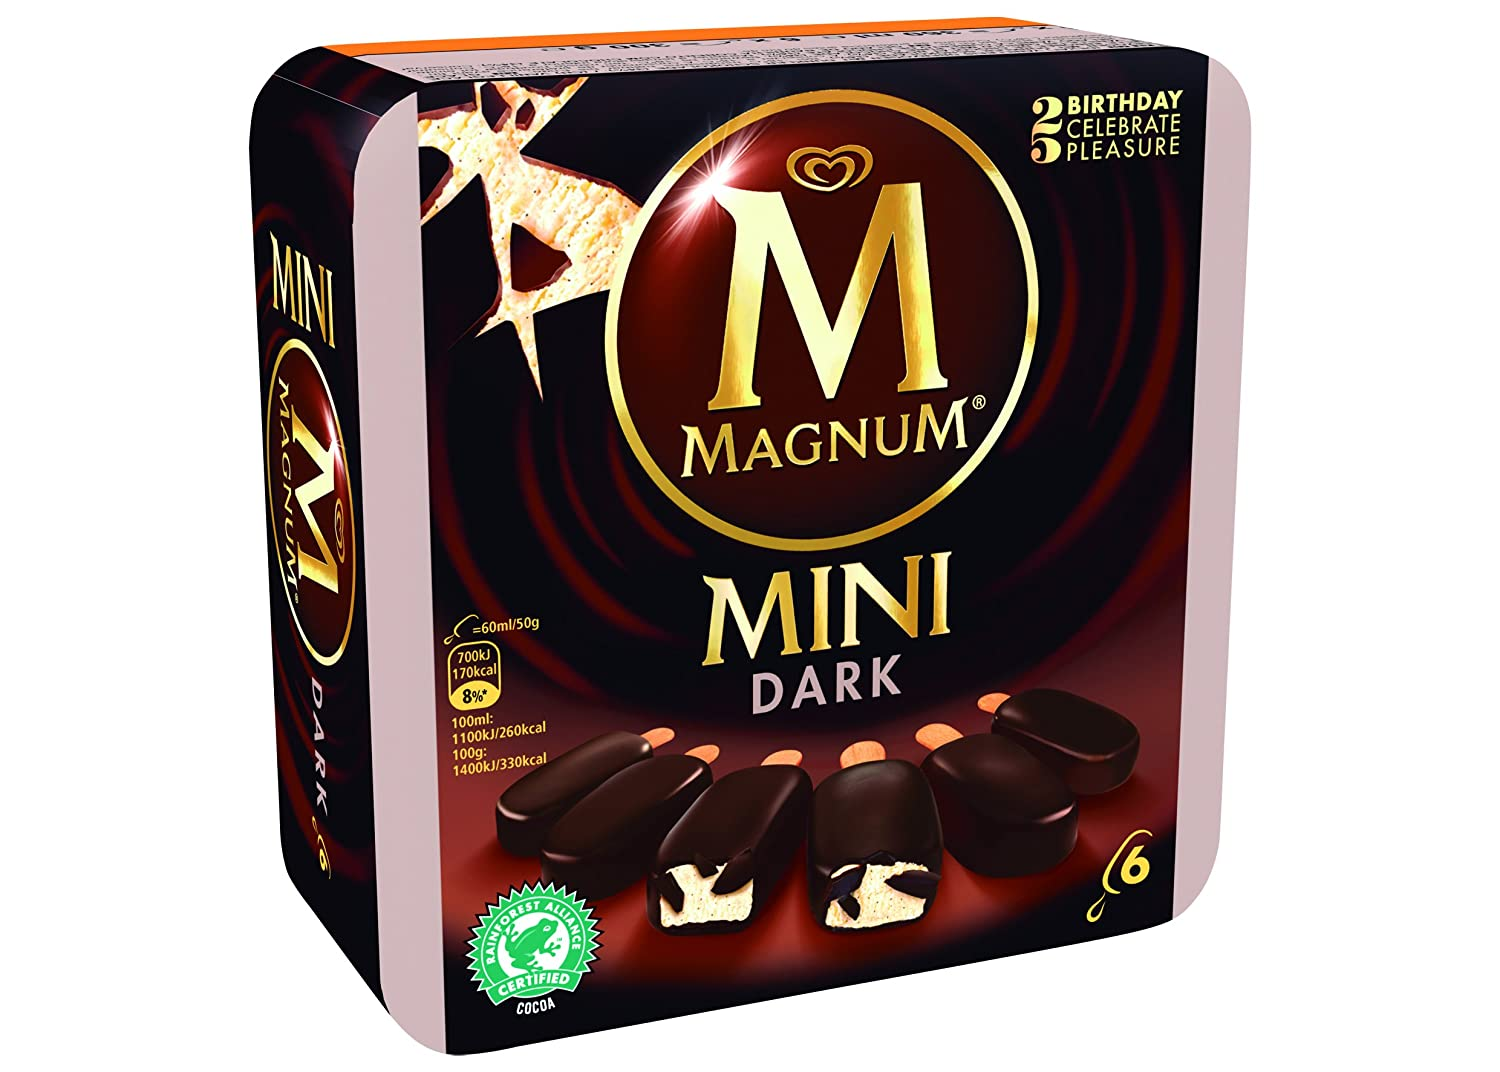 Magnum Mini Chocolate Negro Helado - Paquete de 6 x 60 ml - Total: 360 ml: Amazon.es: Alimentación y bebidas